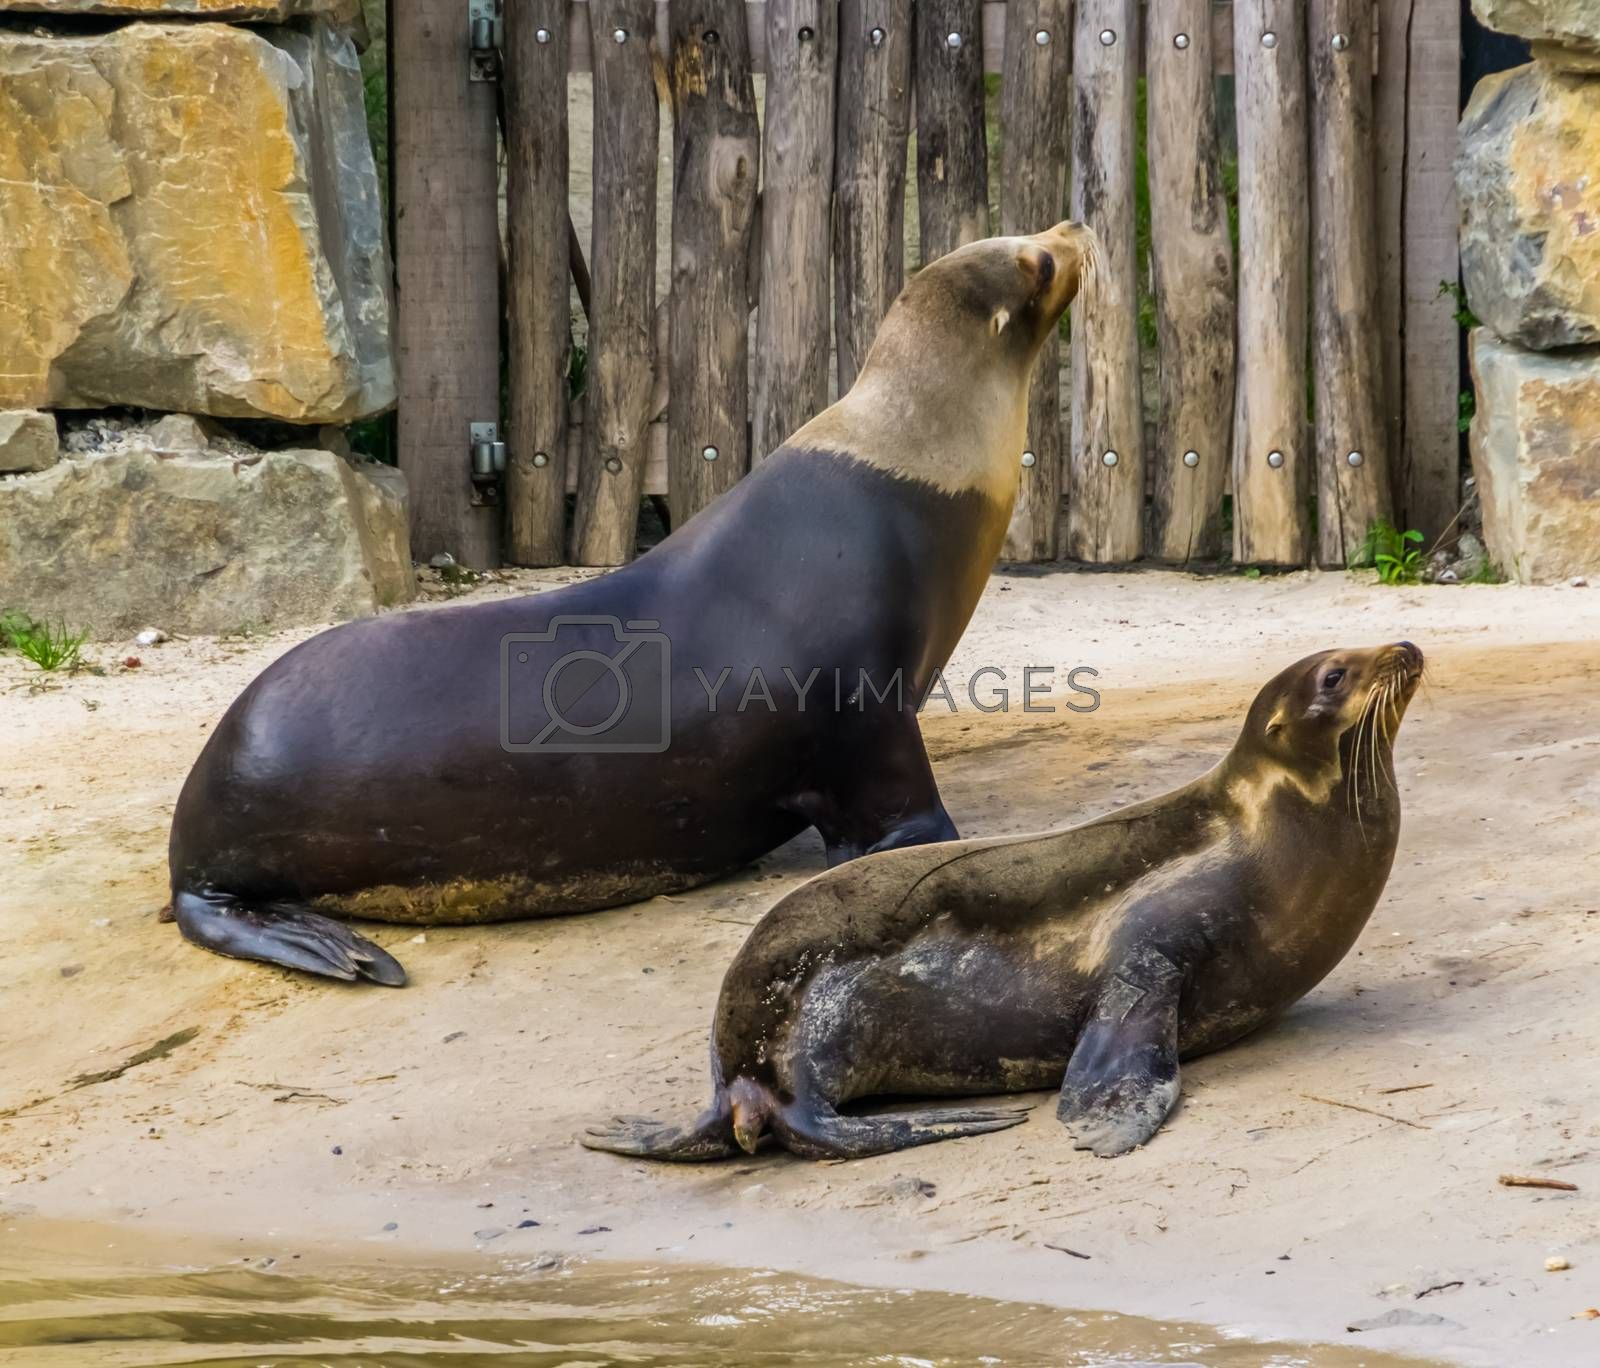 couple of california sea lions at the water side, tropical eared seal specie from America